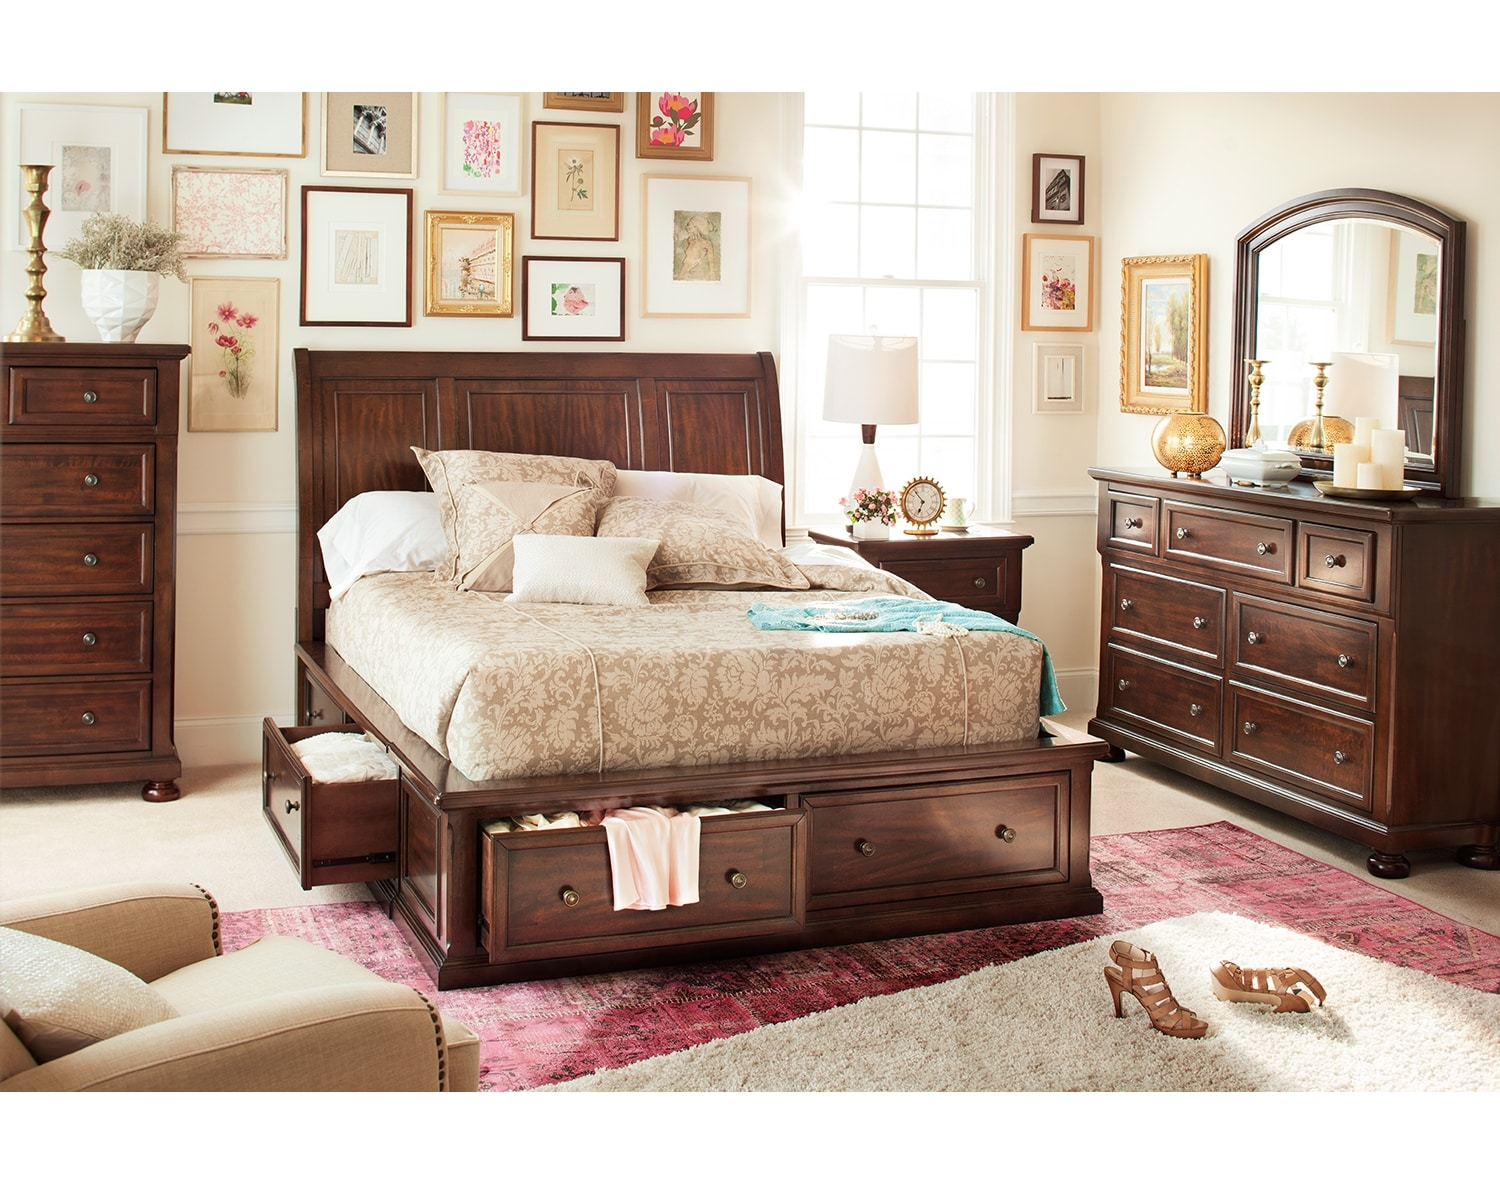 The Hanover Storage Bedroom Collection - Cherry  Value City Furniture